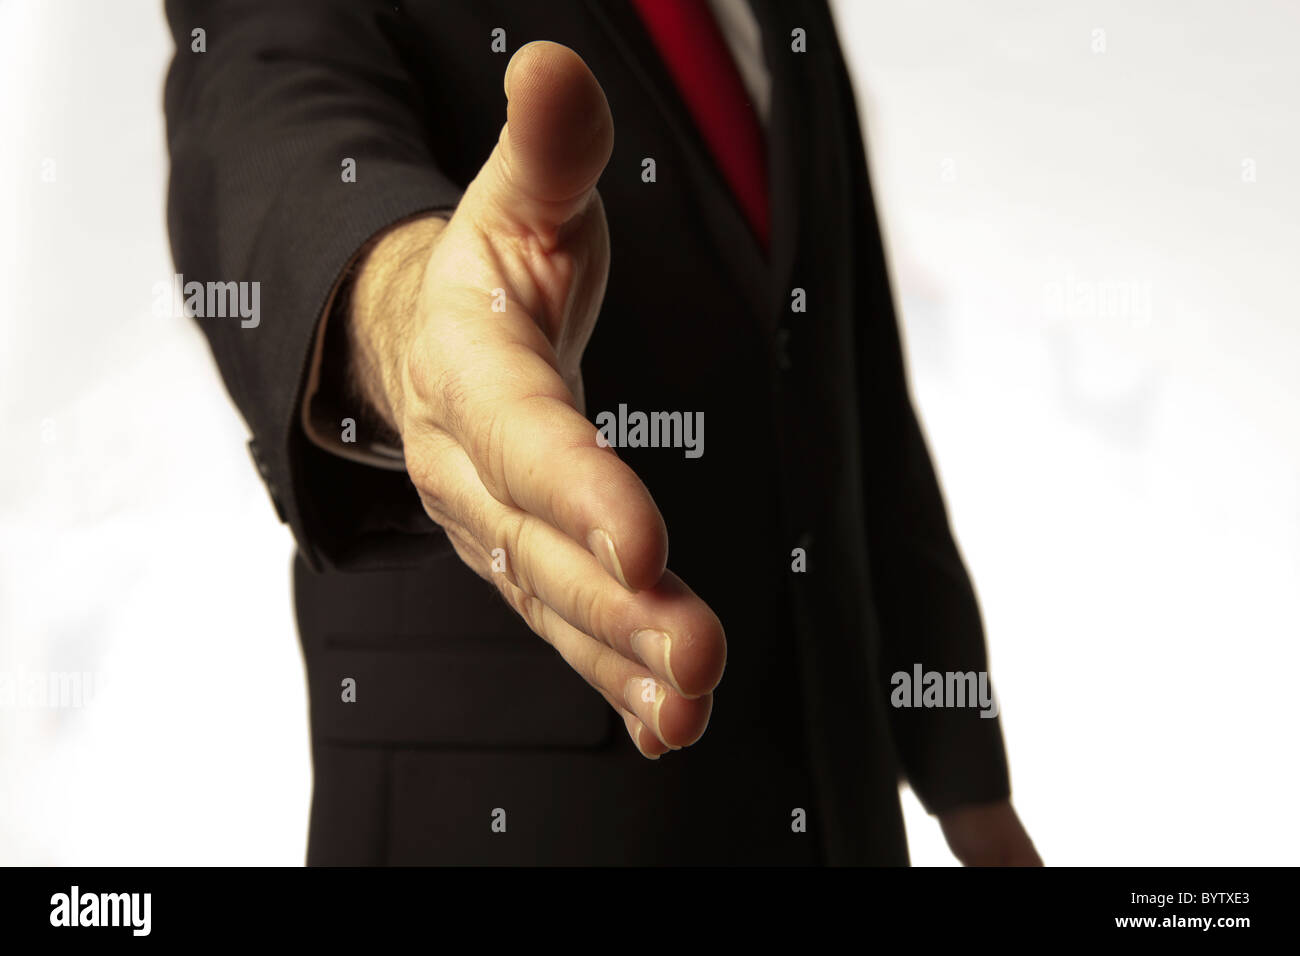 Stock Photo  Man In Business Suit And Red Tie About To Shake Your Hand